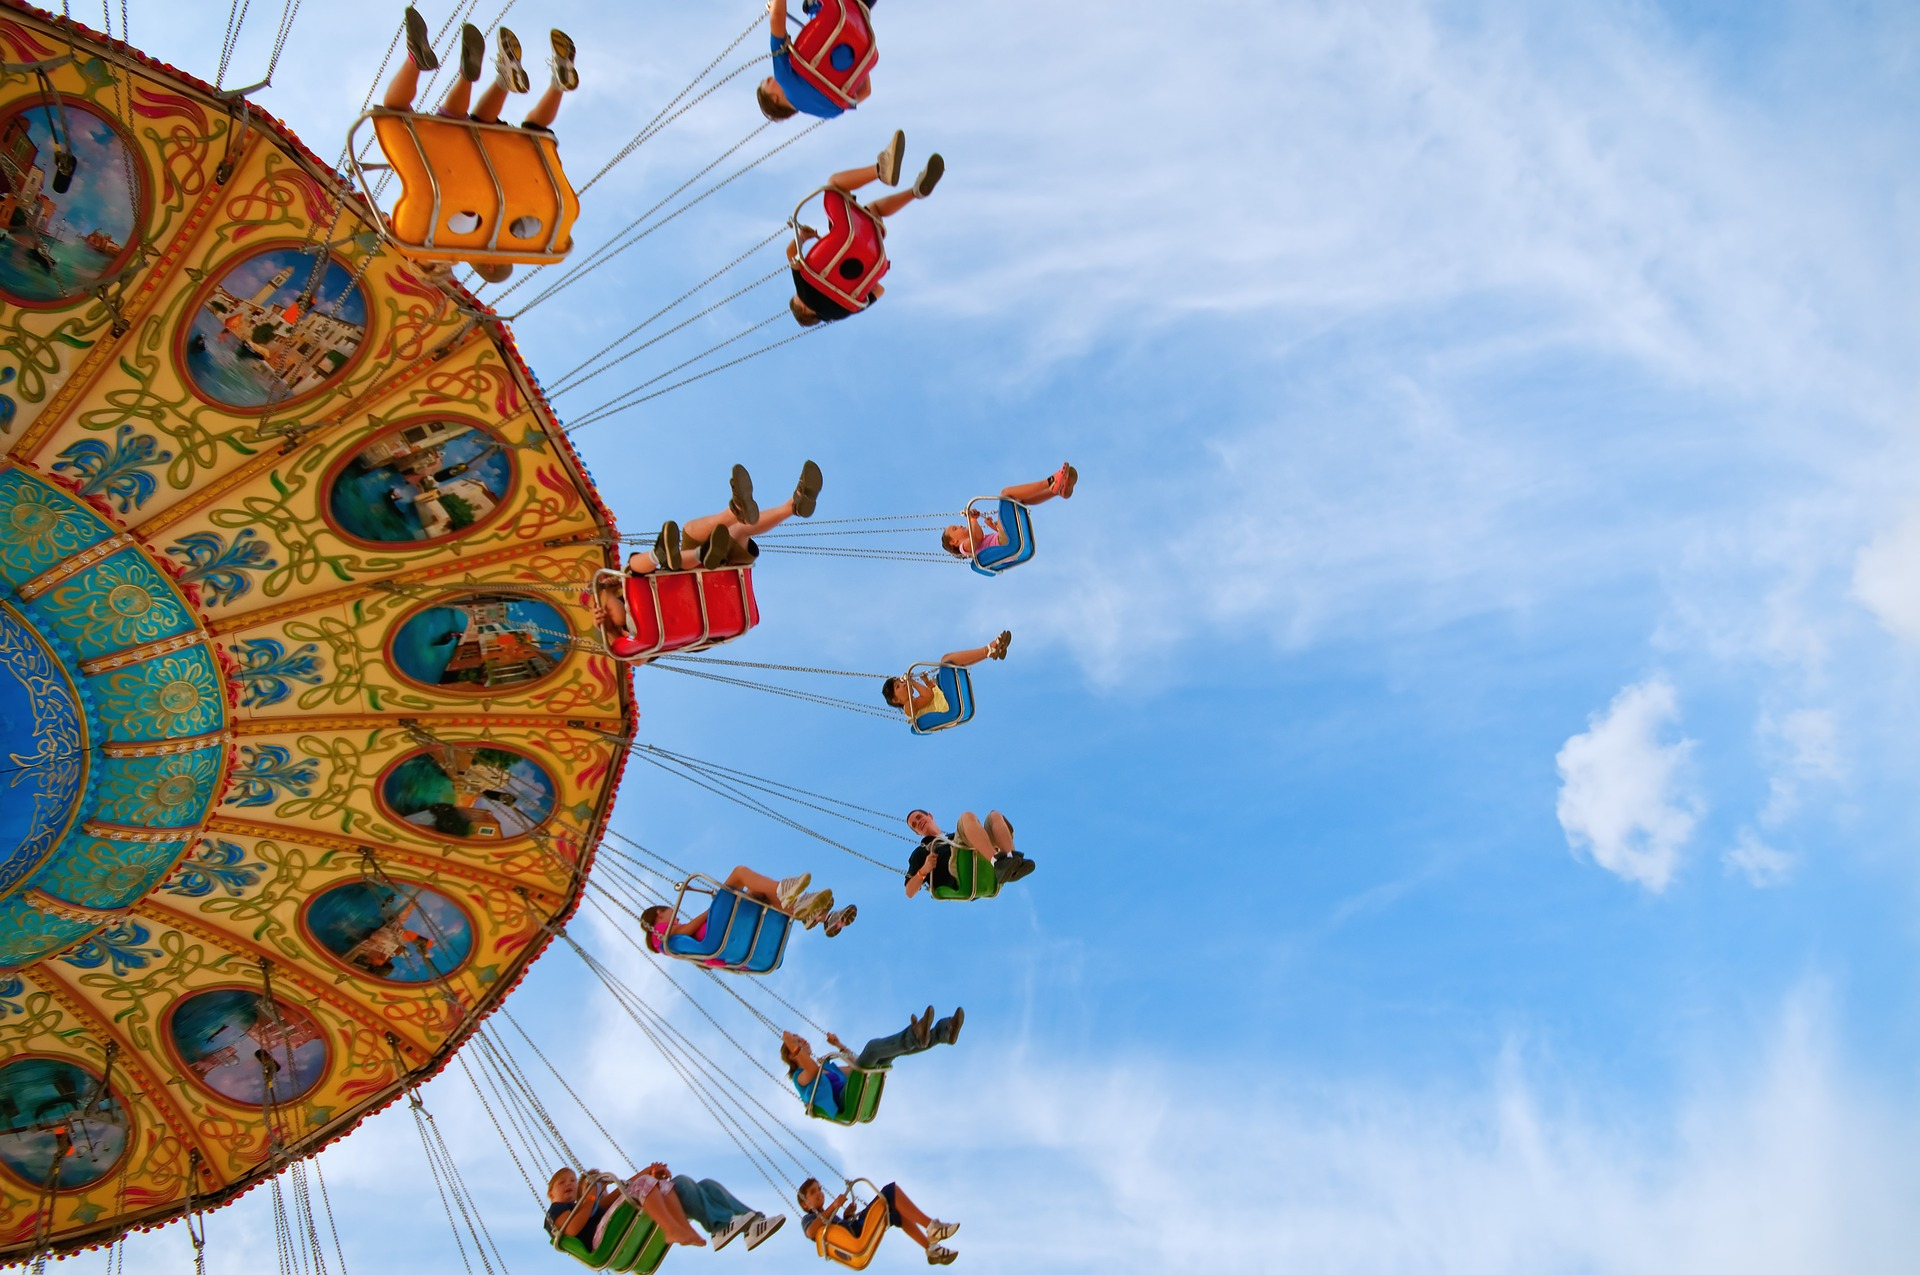 The Ultimate In Fair Ground Thrills At The Leeds Show